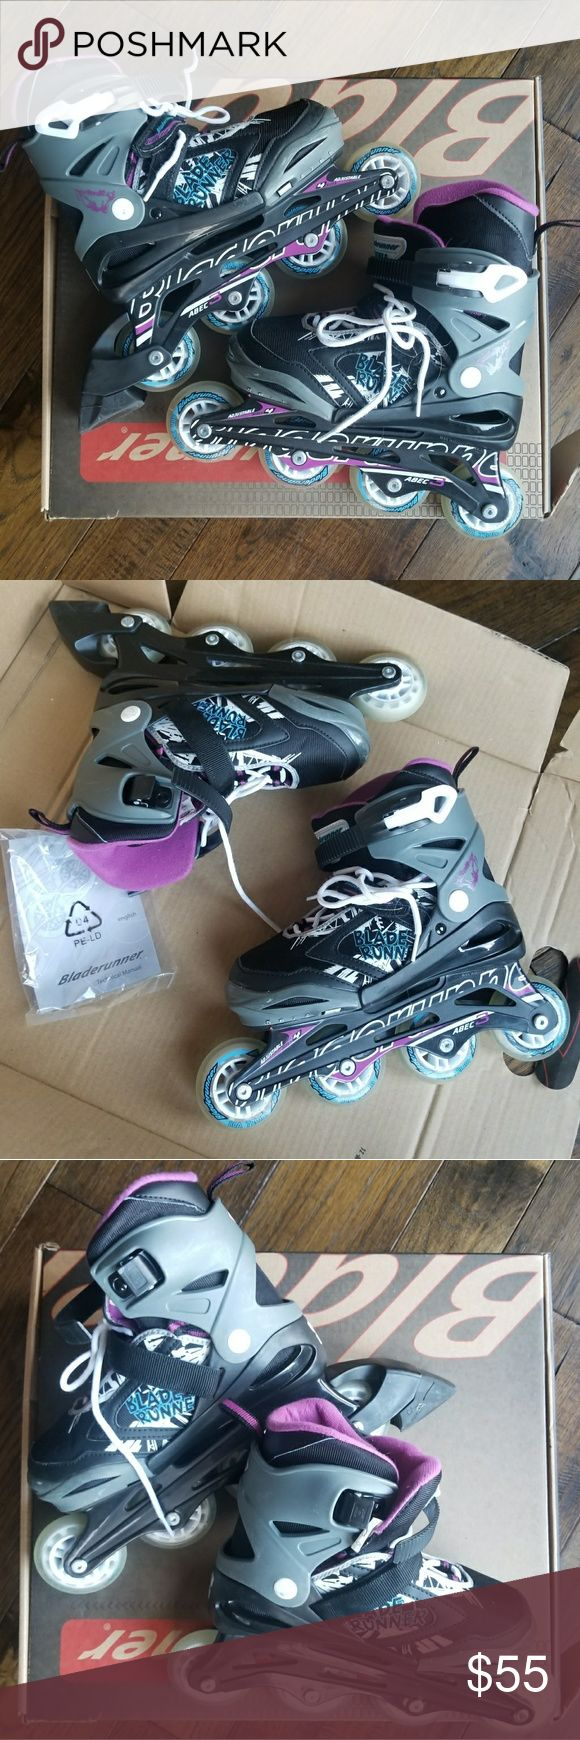 Bladerunner Rollerblades. Phoenix G. Sz. 5-8 Bladerunner Rollerblades. Phoenix G. Sz. 5-8 Excellent used condition. Great that they are as your child grows. Fits size 5 through 8. They are Black, gray, purple, White and blue. Comes with box. Originally purchased from Academy Bladerunner Shoes